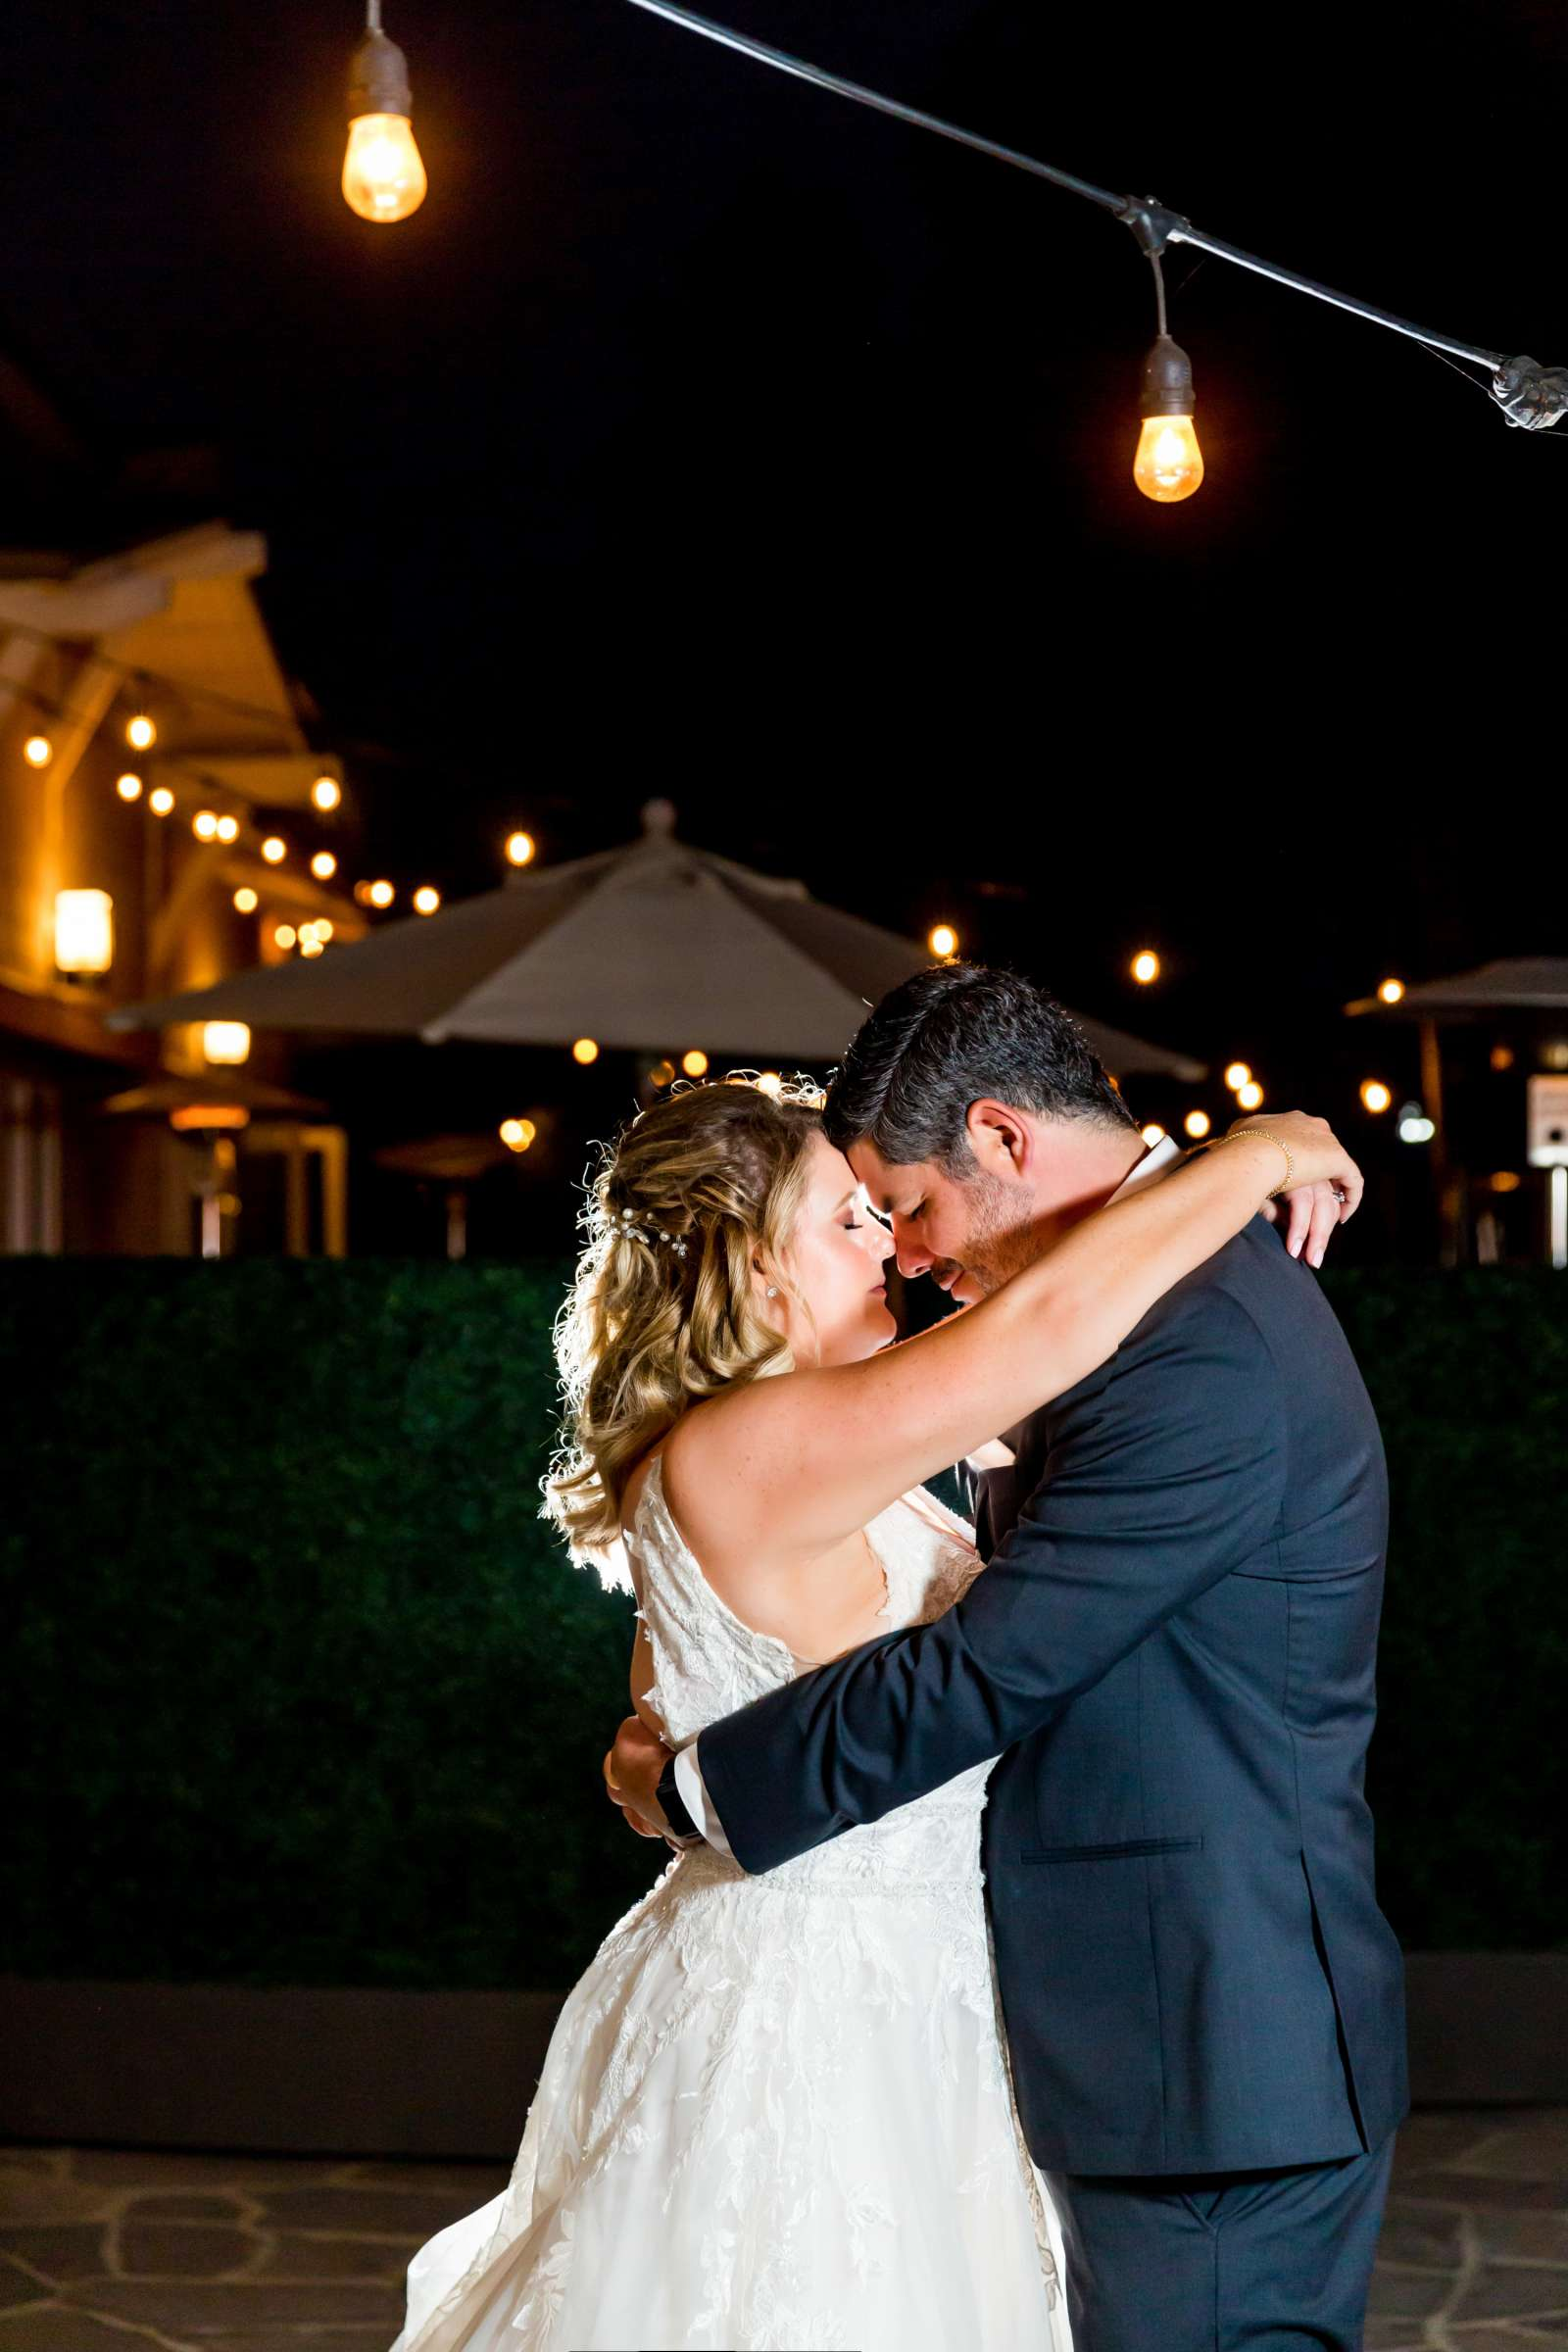 Cape Rey Carlsbad, A Hilton Resort Wedding, Michelle and Justin Wedding Photo #14 by True Photography